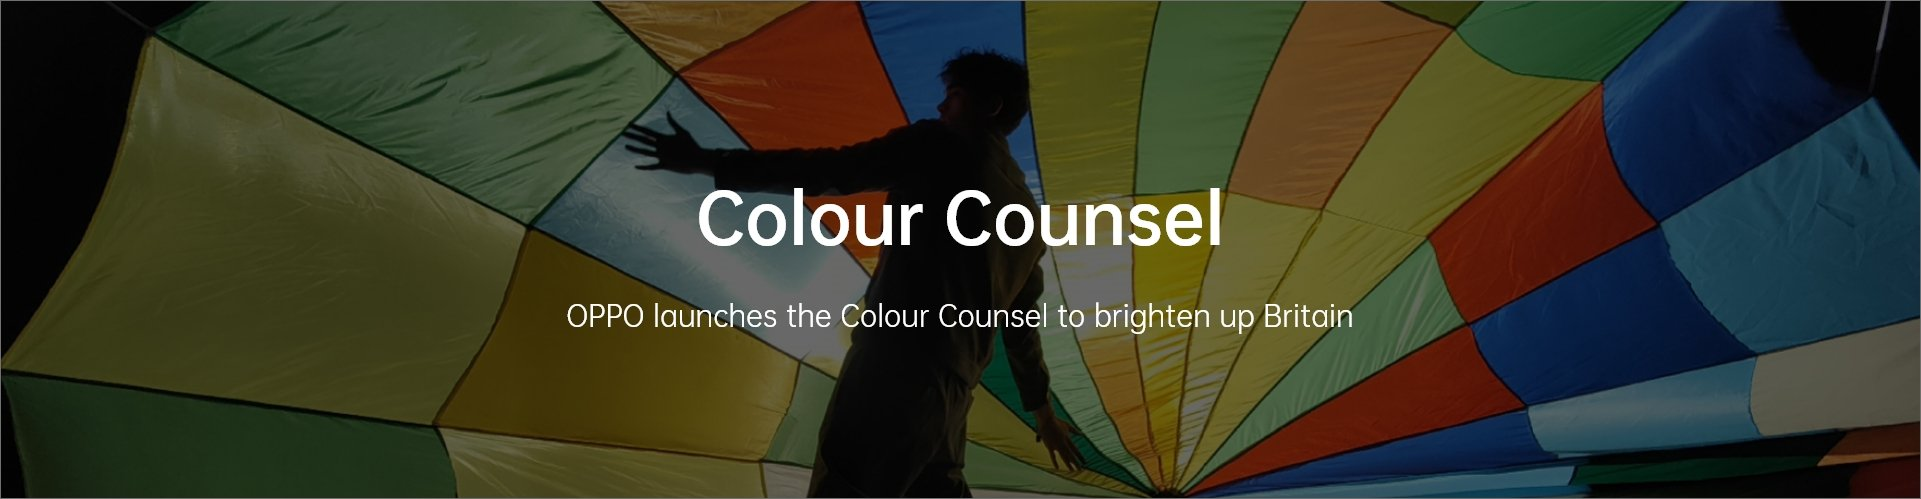 Colours Counsel